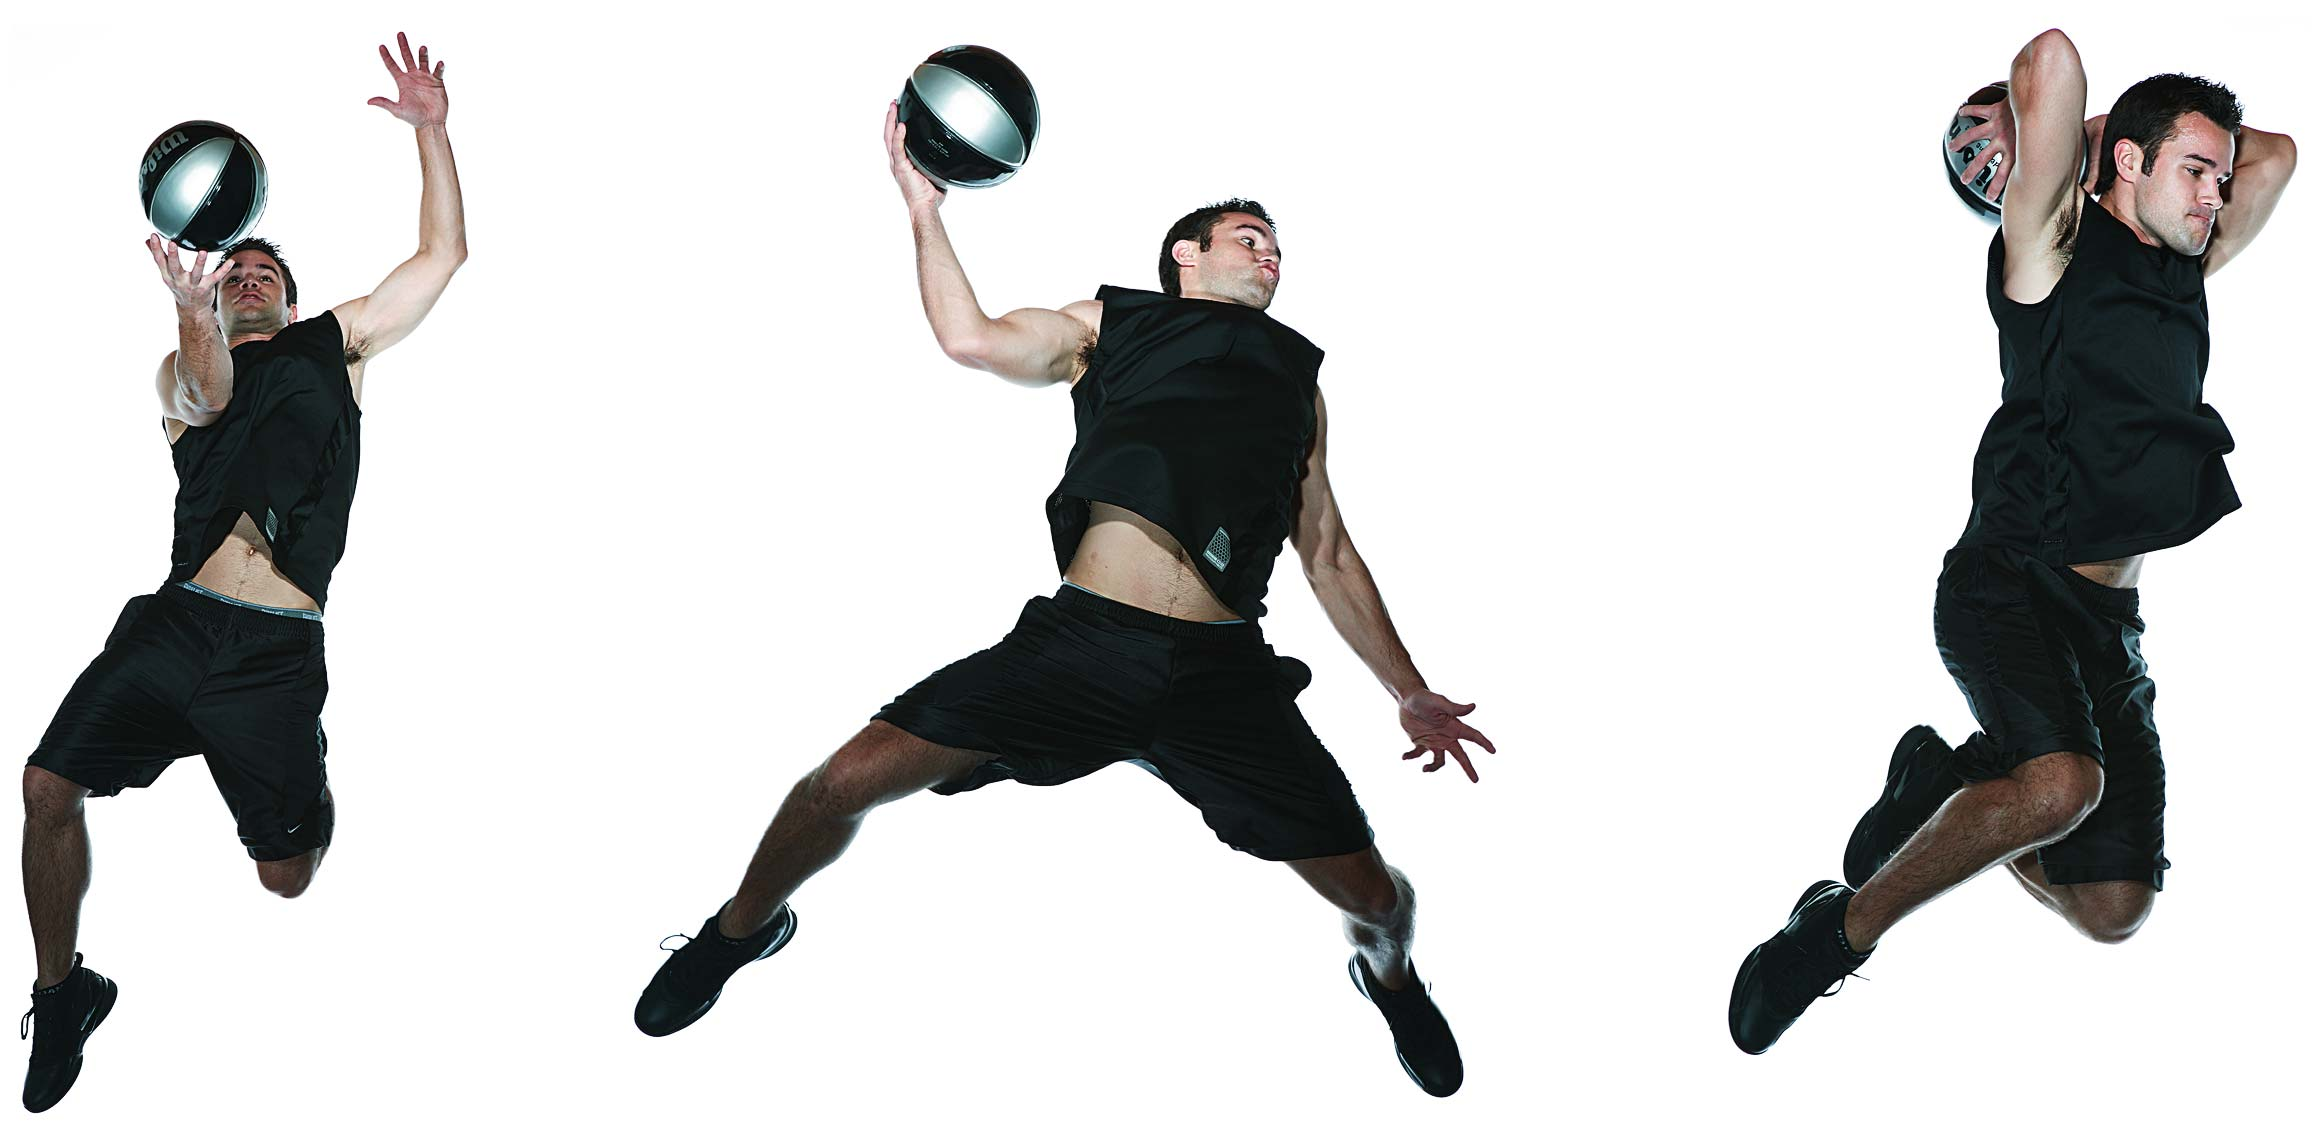 Basketball-Athlete-Advertising-Portrait-Vancouver.jpg